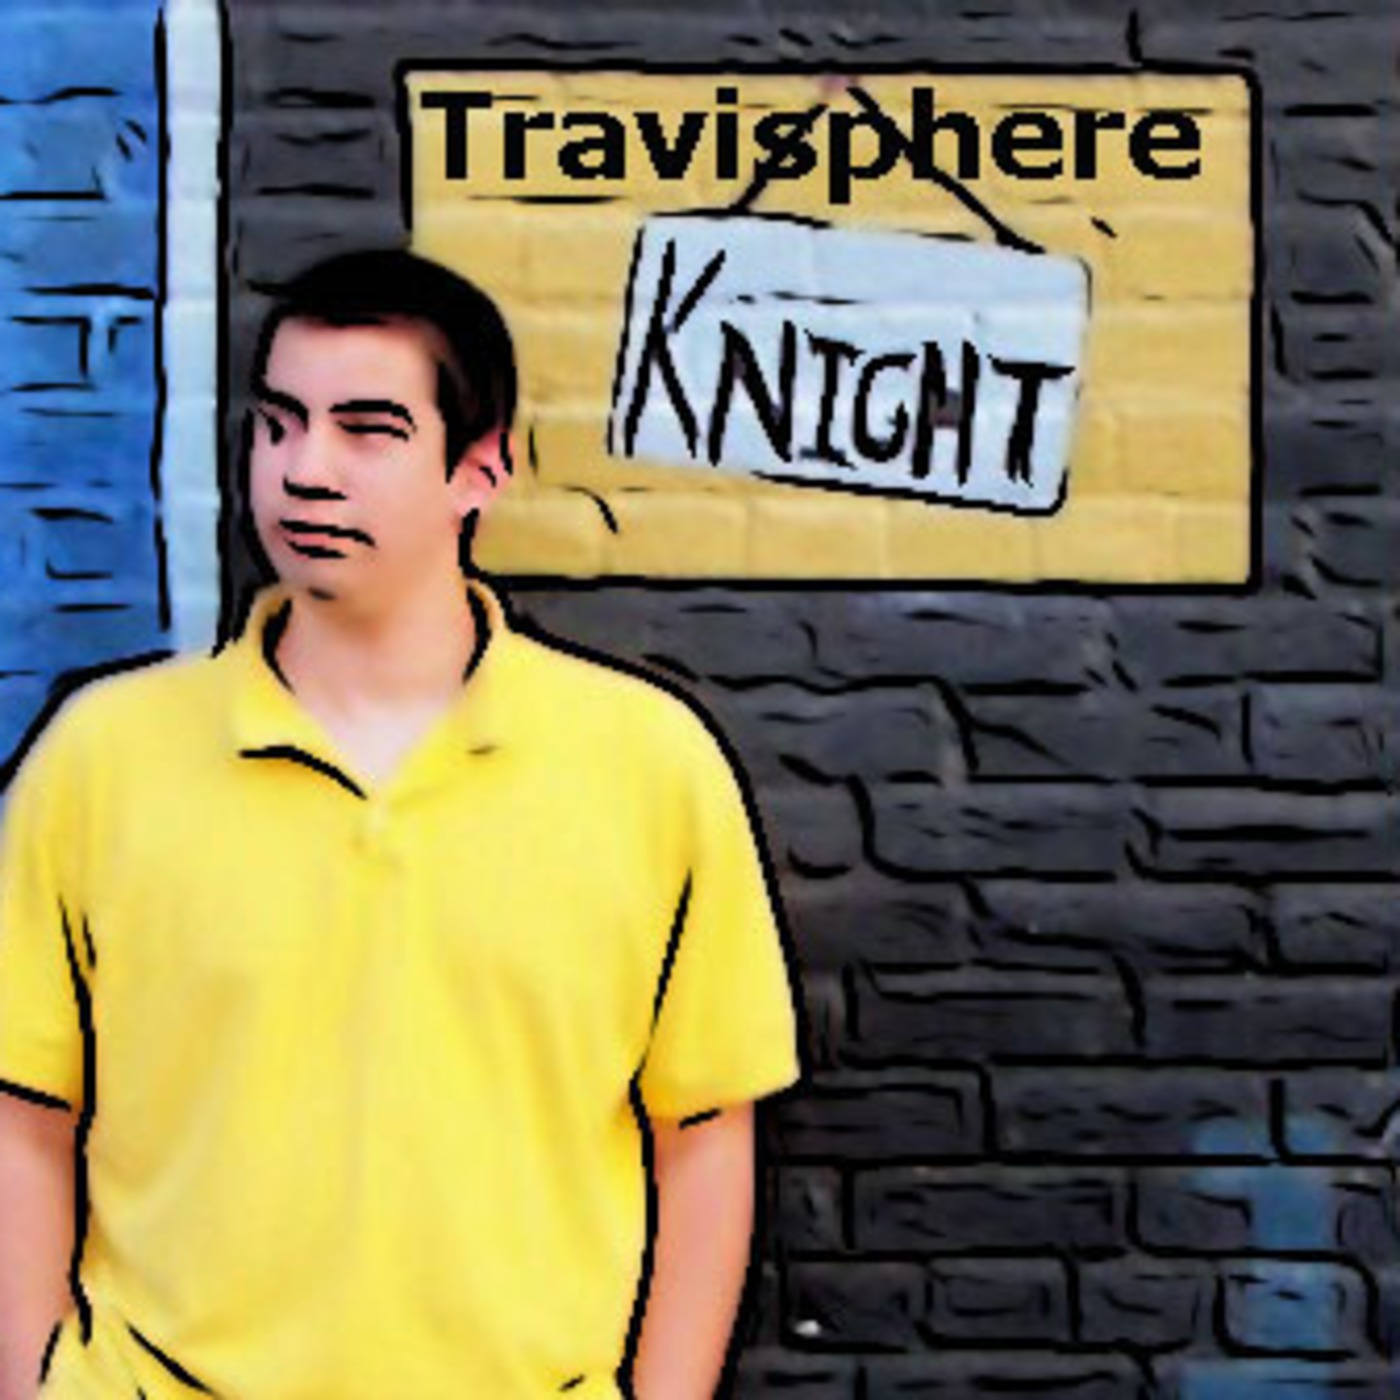 The Travisphere